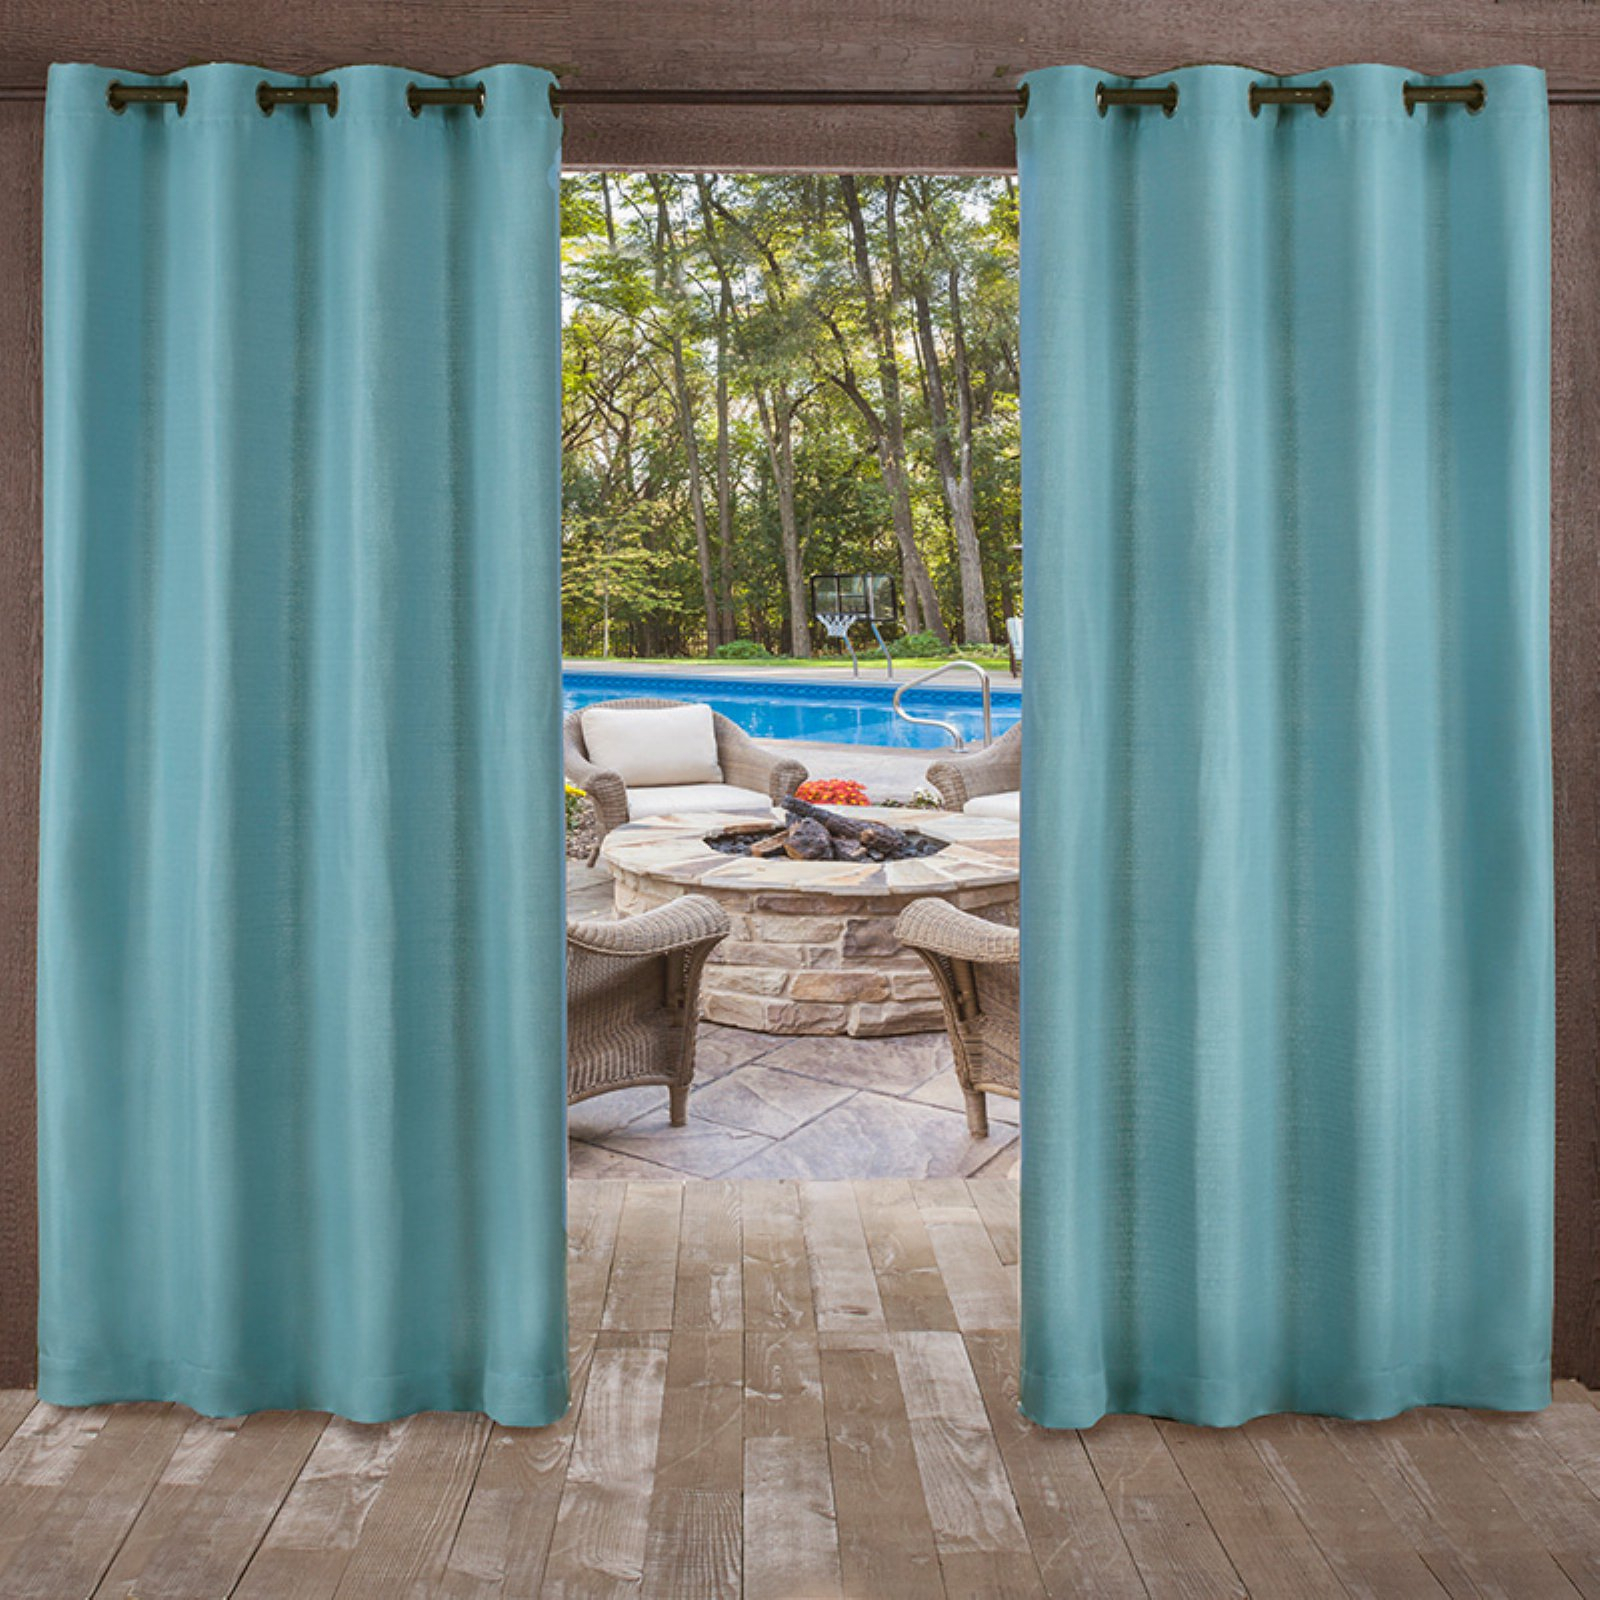 Exclusive Home Delano Heavyweight Textured Indoor/outdoor With Regard To Delano Indoor/outdoor Grommet Top Curtain Panel Pairs (View 7 of 20)